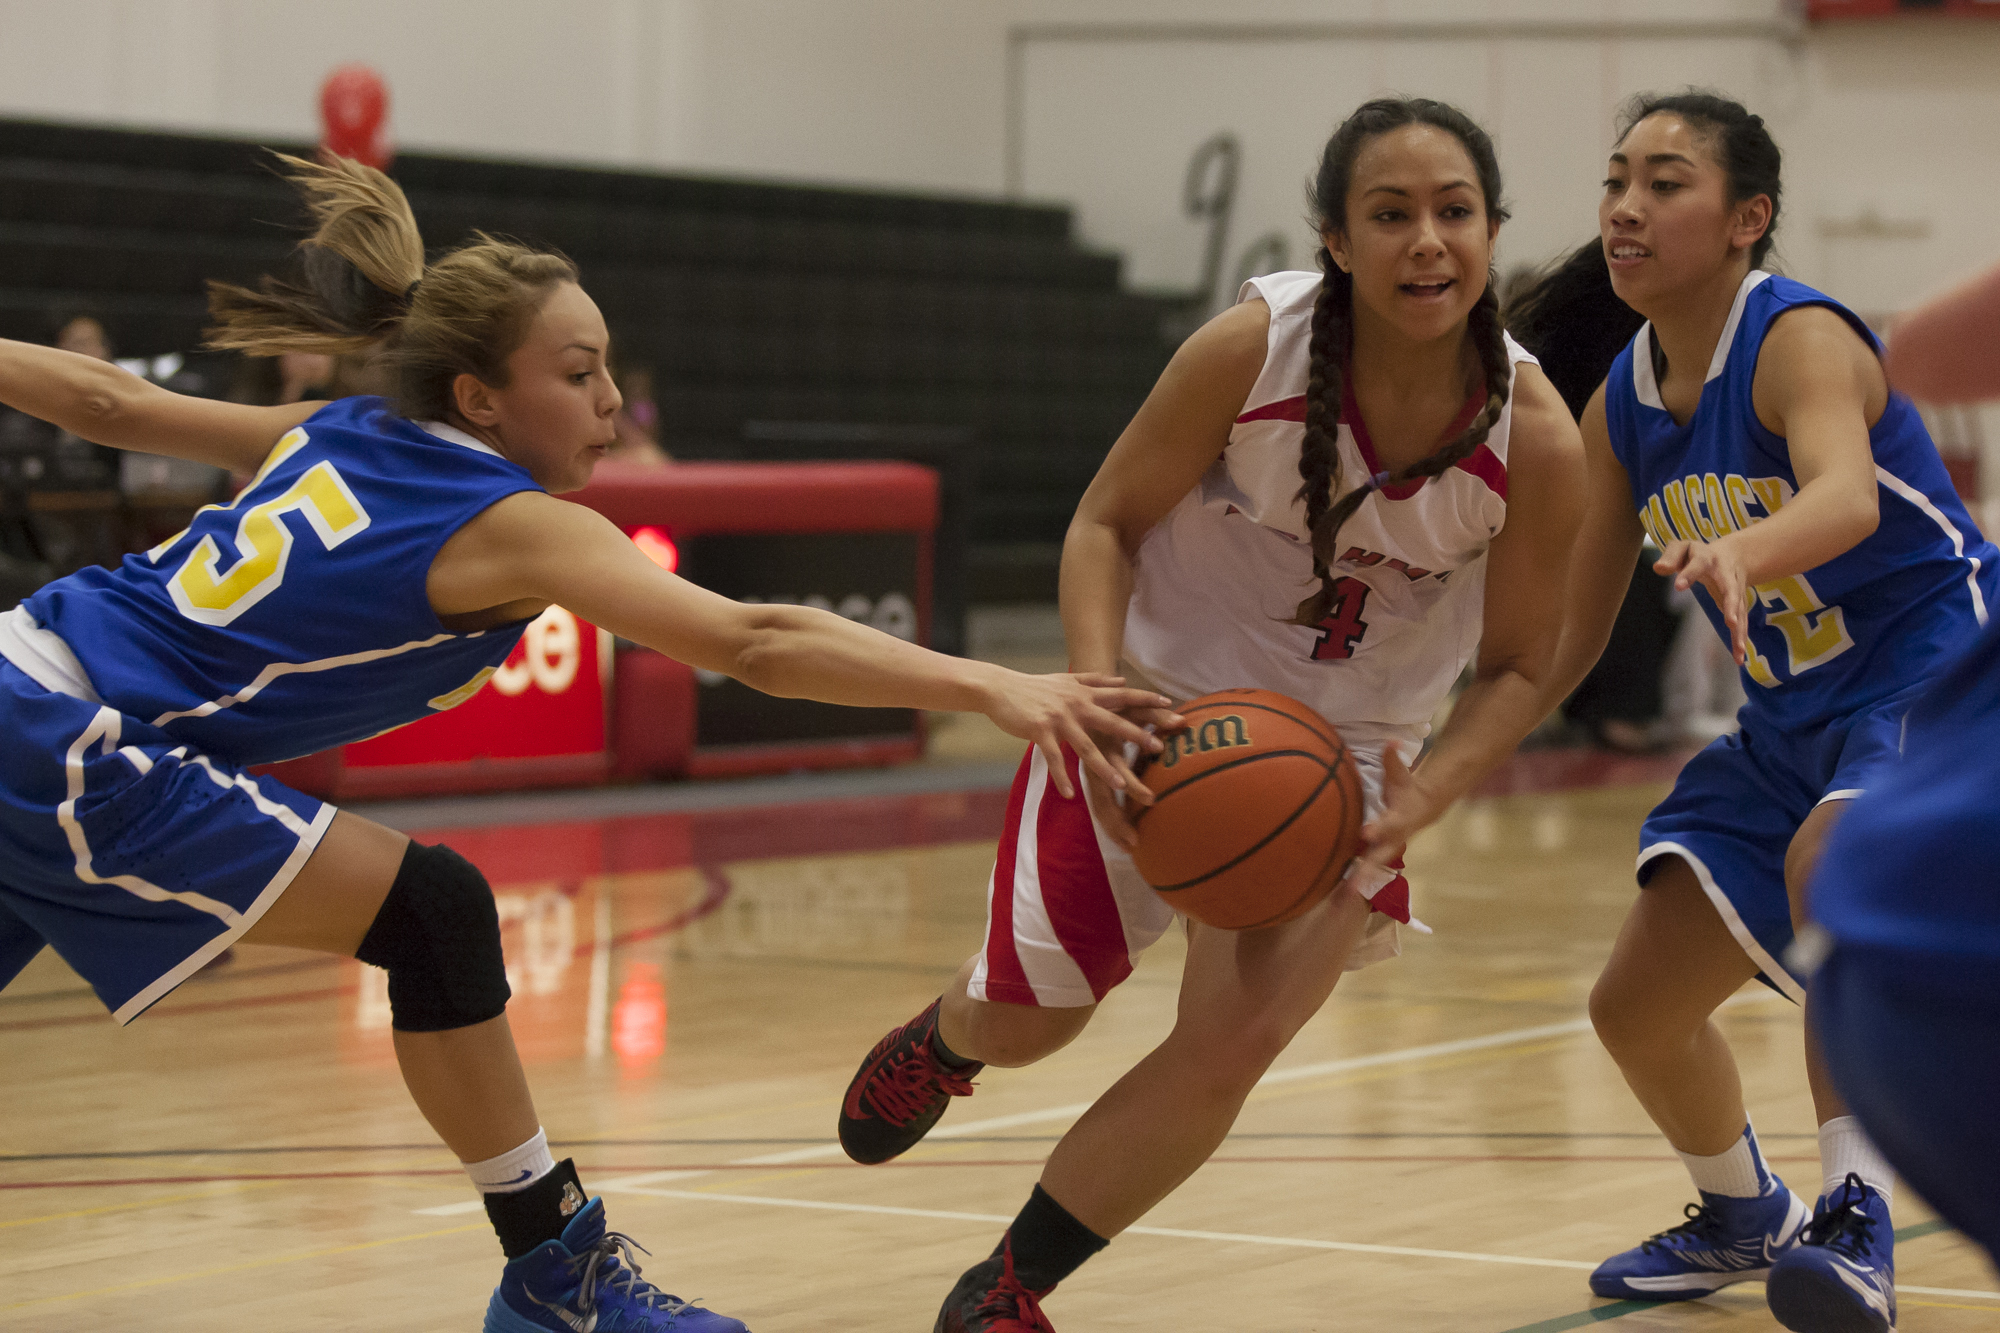 Women's basketball team celebrates graduating class with blowout victory